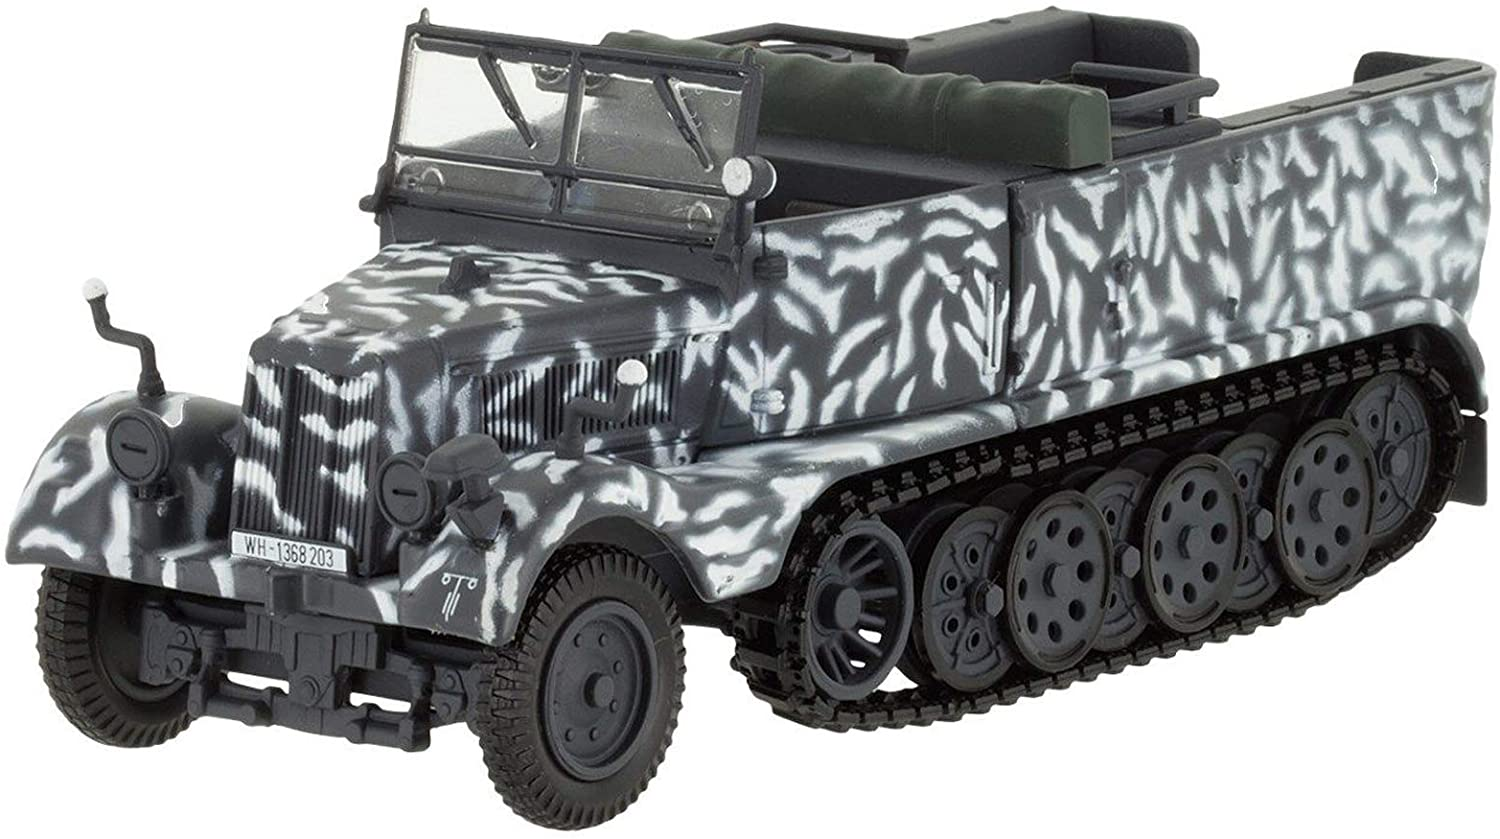 Sonderkraftfahrzeug Sd.Kfz 1942 Year German Special Purpose Vehicle 1/43 Collectible Model Vehicle Special Ordnance Vehicle